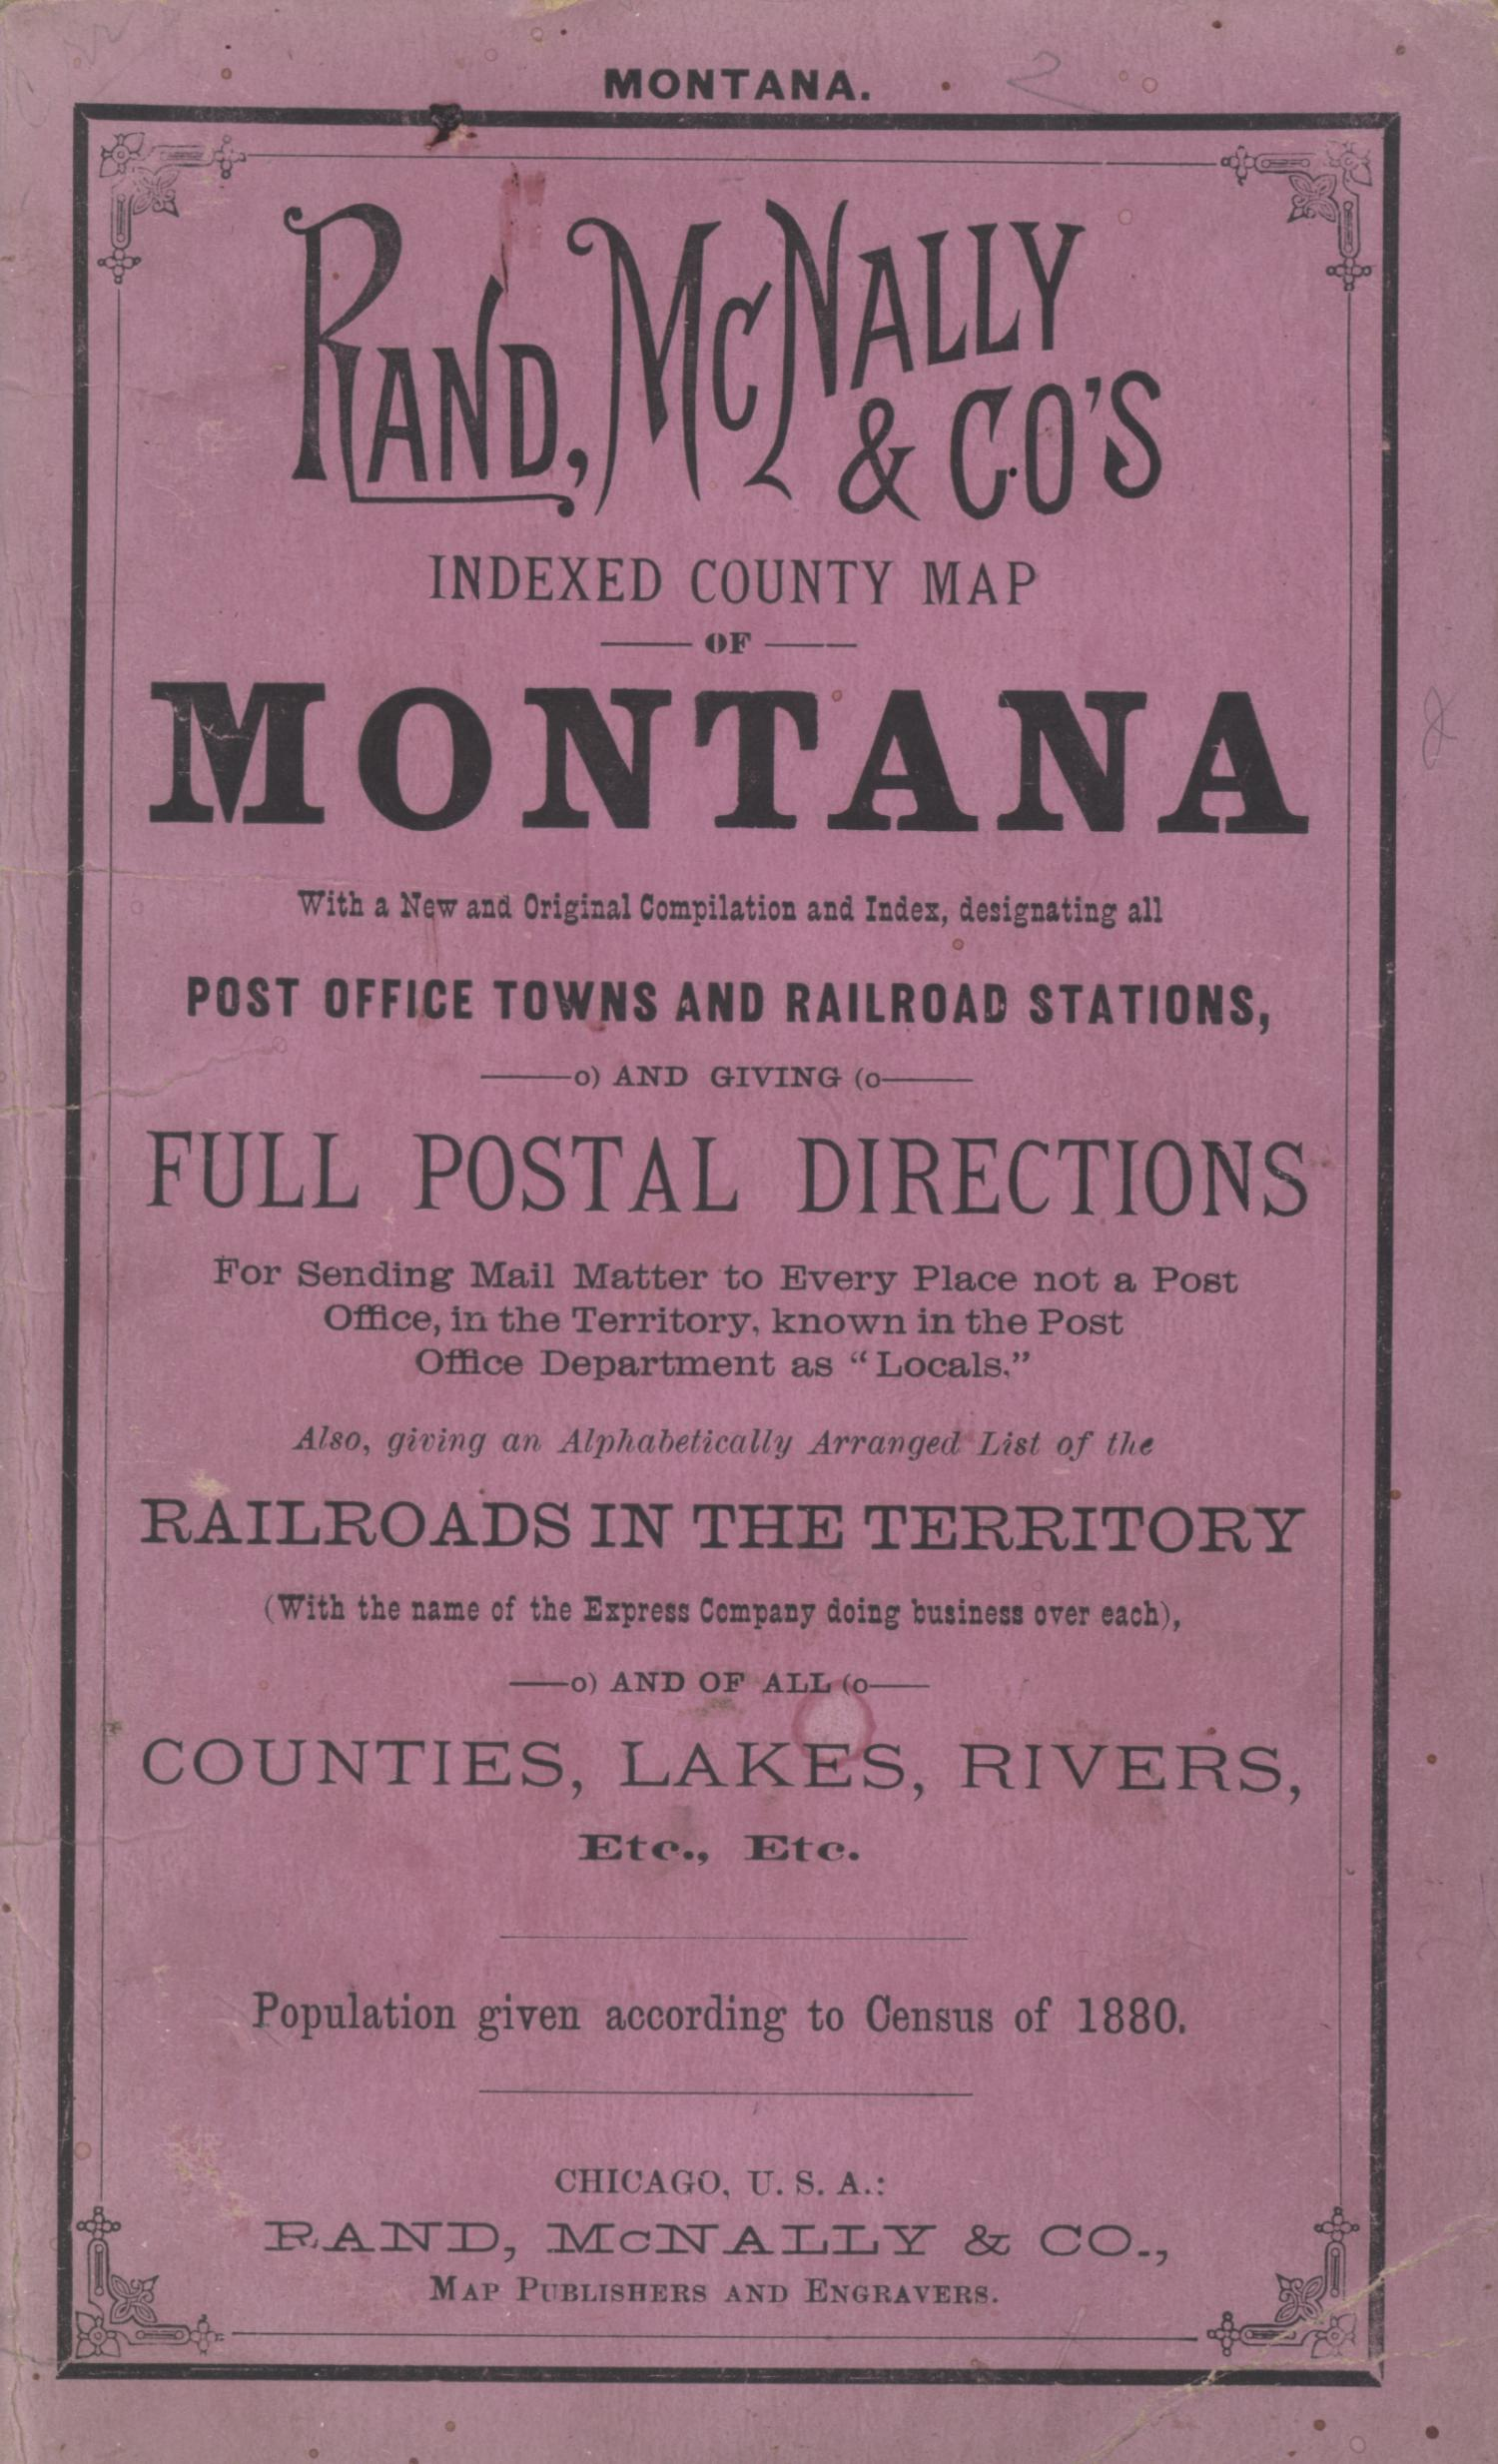 Rand, McNally & Co.s Montana [Accompanying Text]., Explanation and supporting information related to map that shows late nineteenth century Montana counties, Native American reservations, roads, railroads, Yellowstone National Park, military posts and reservations, cities, and towns.,